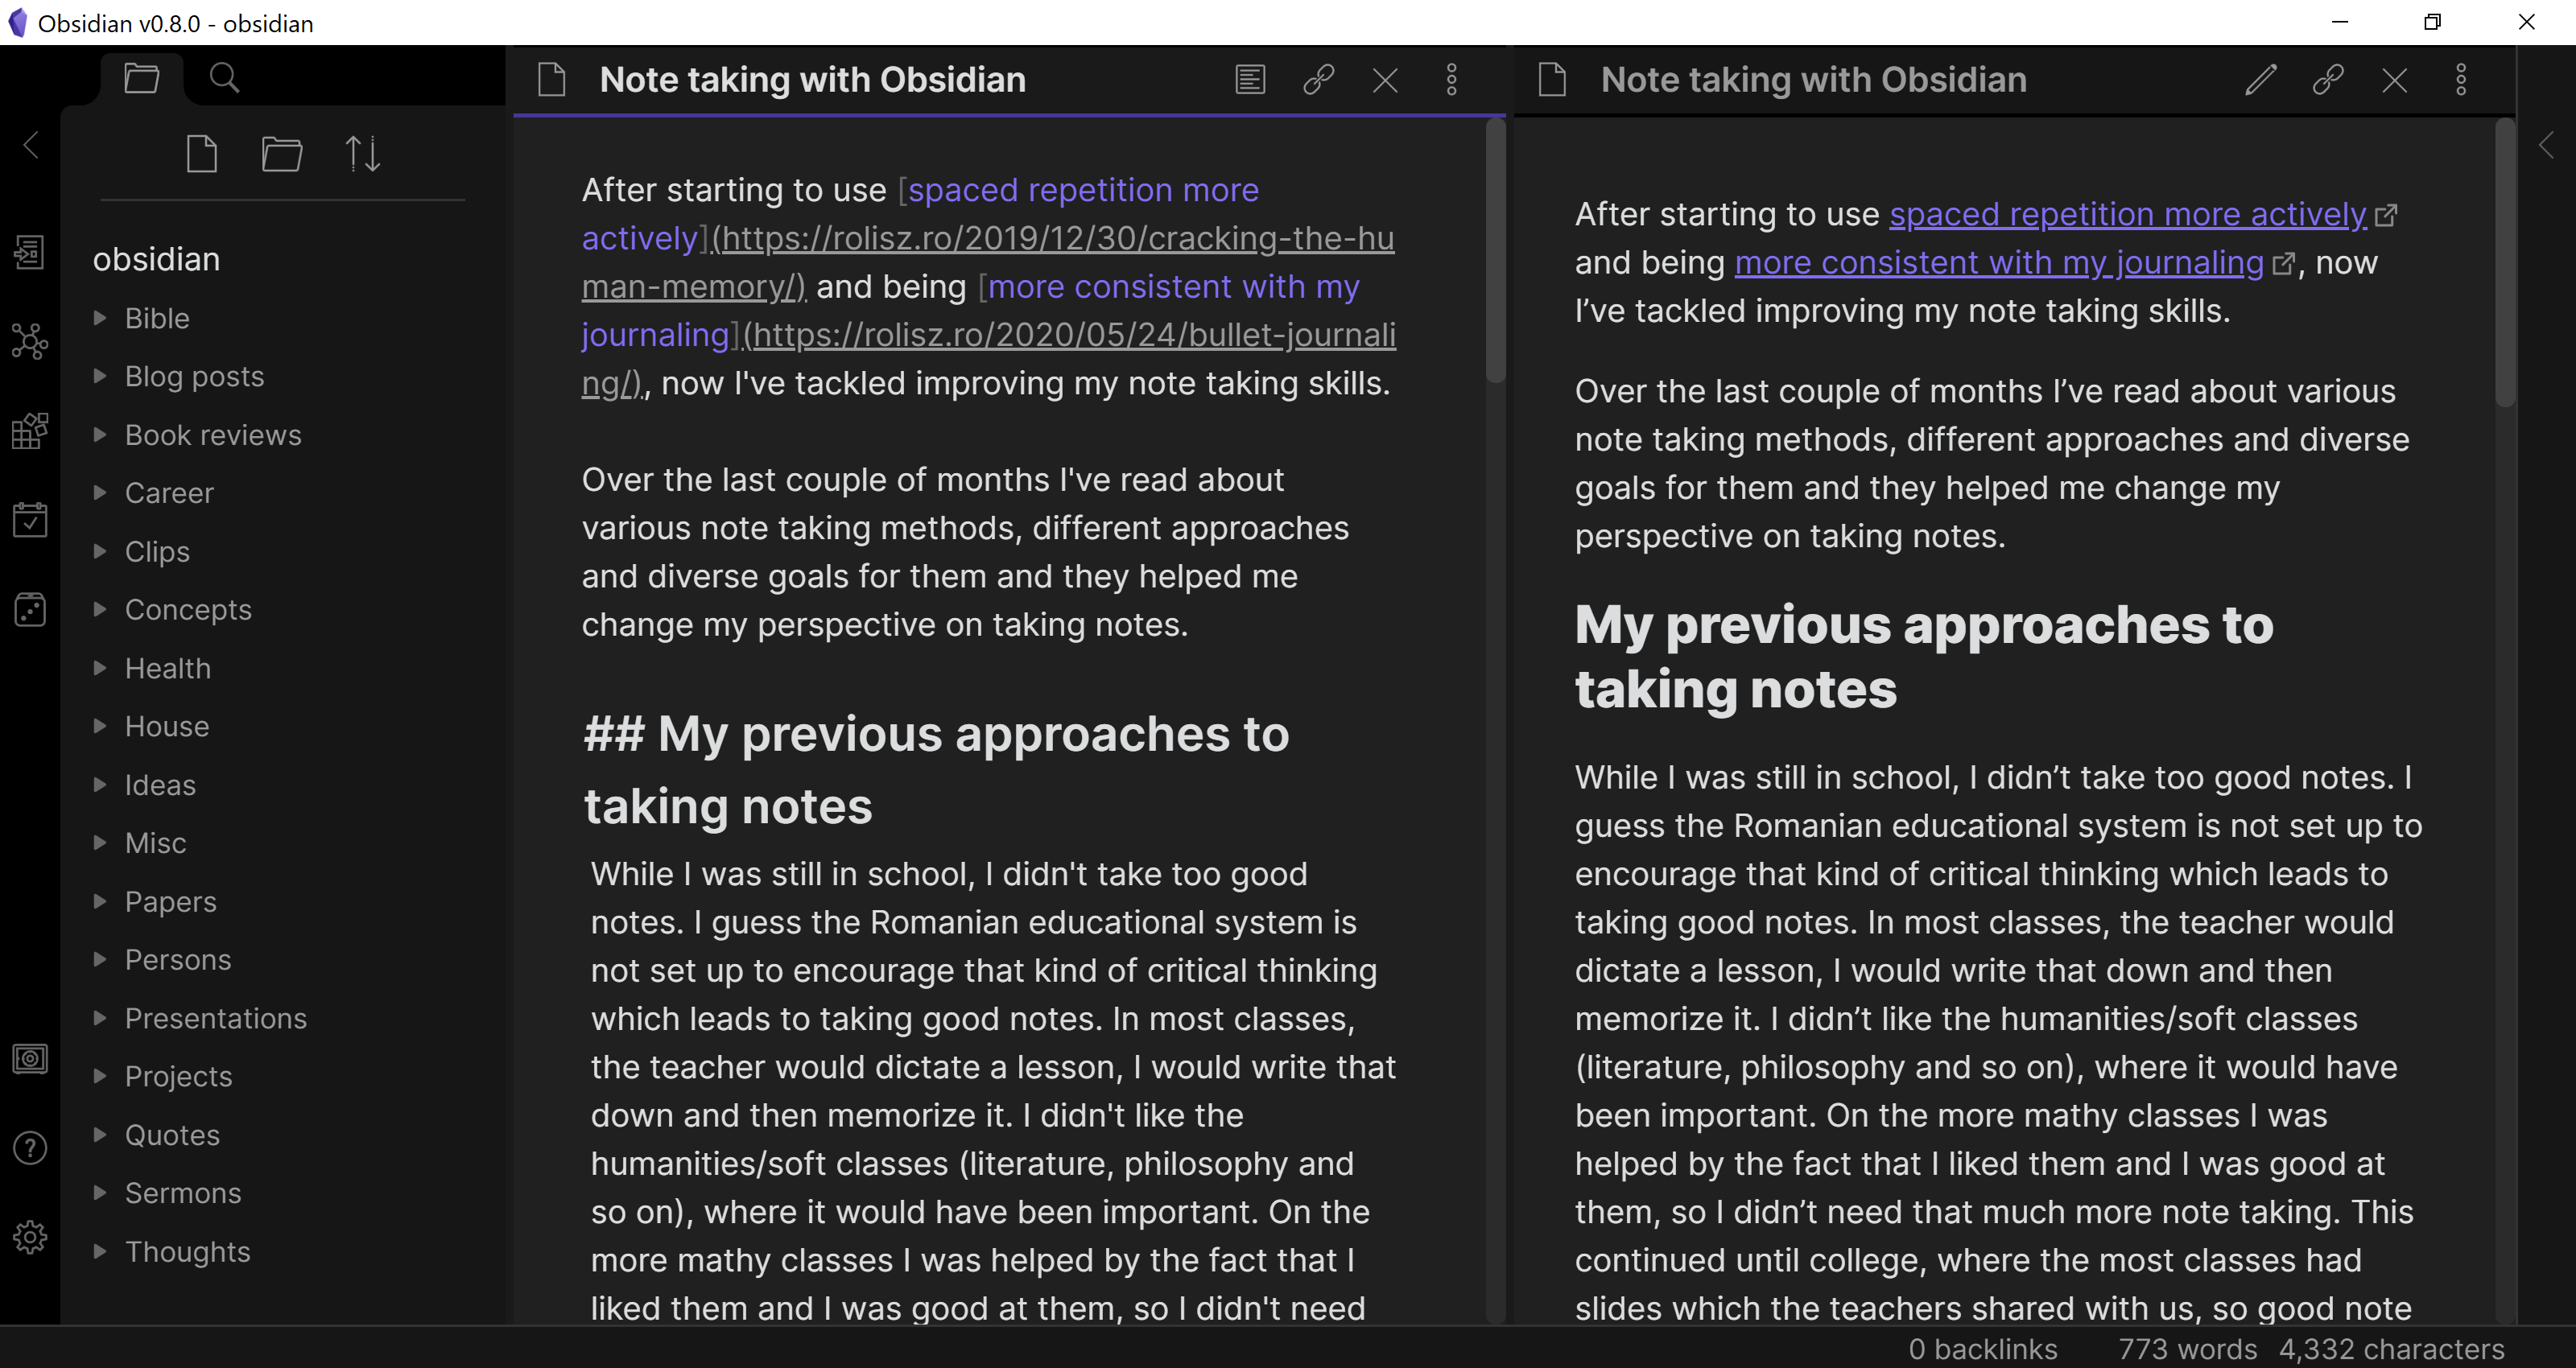 Note taking with Obsidian